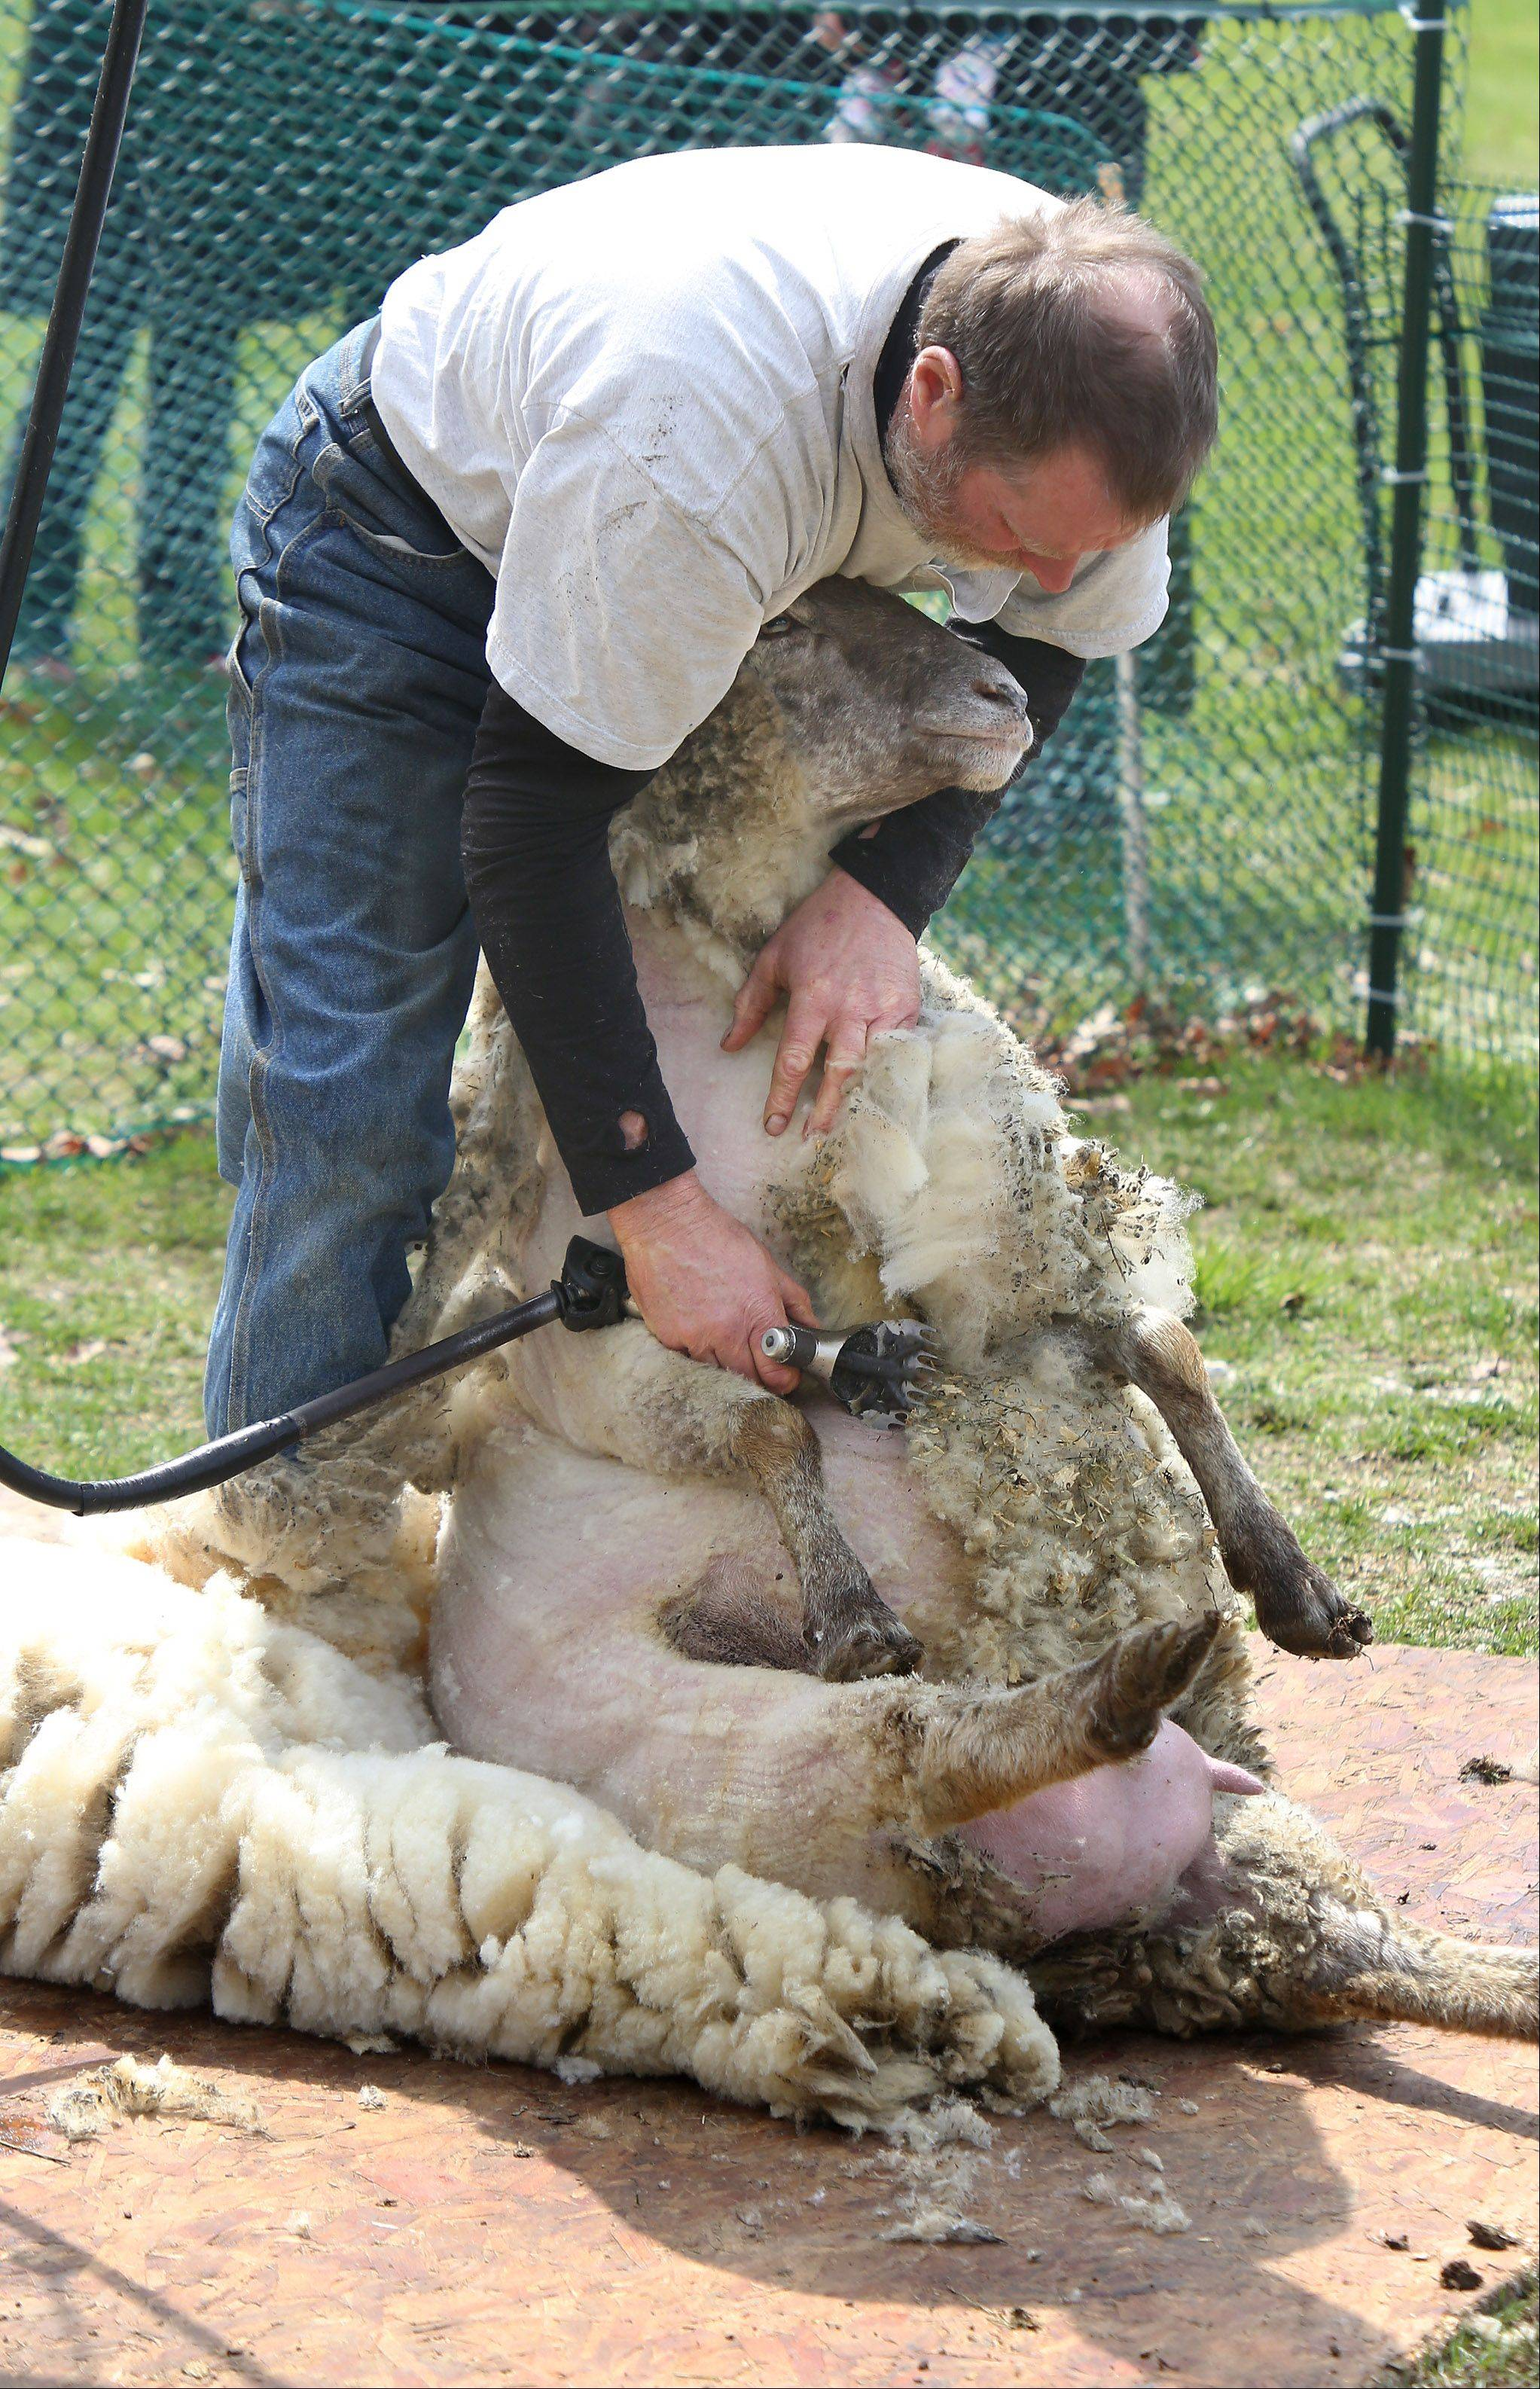 Jerry Magiera, of Wadsworth, shears a sheep at a demonstration during the Spring Celebration event Sunday at Ryerson Conservation Area in Riverwoods.